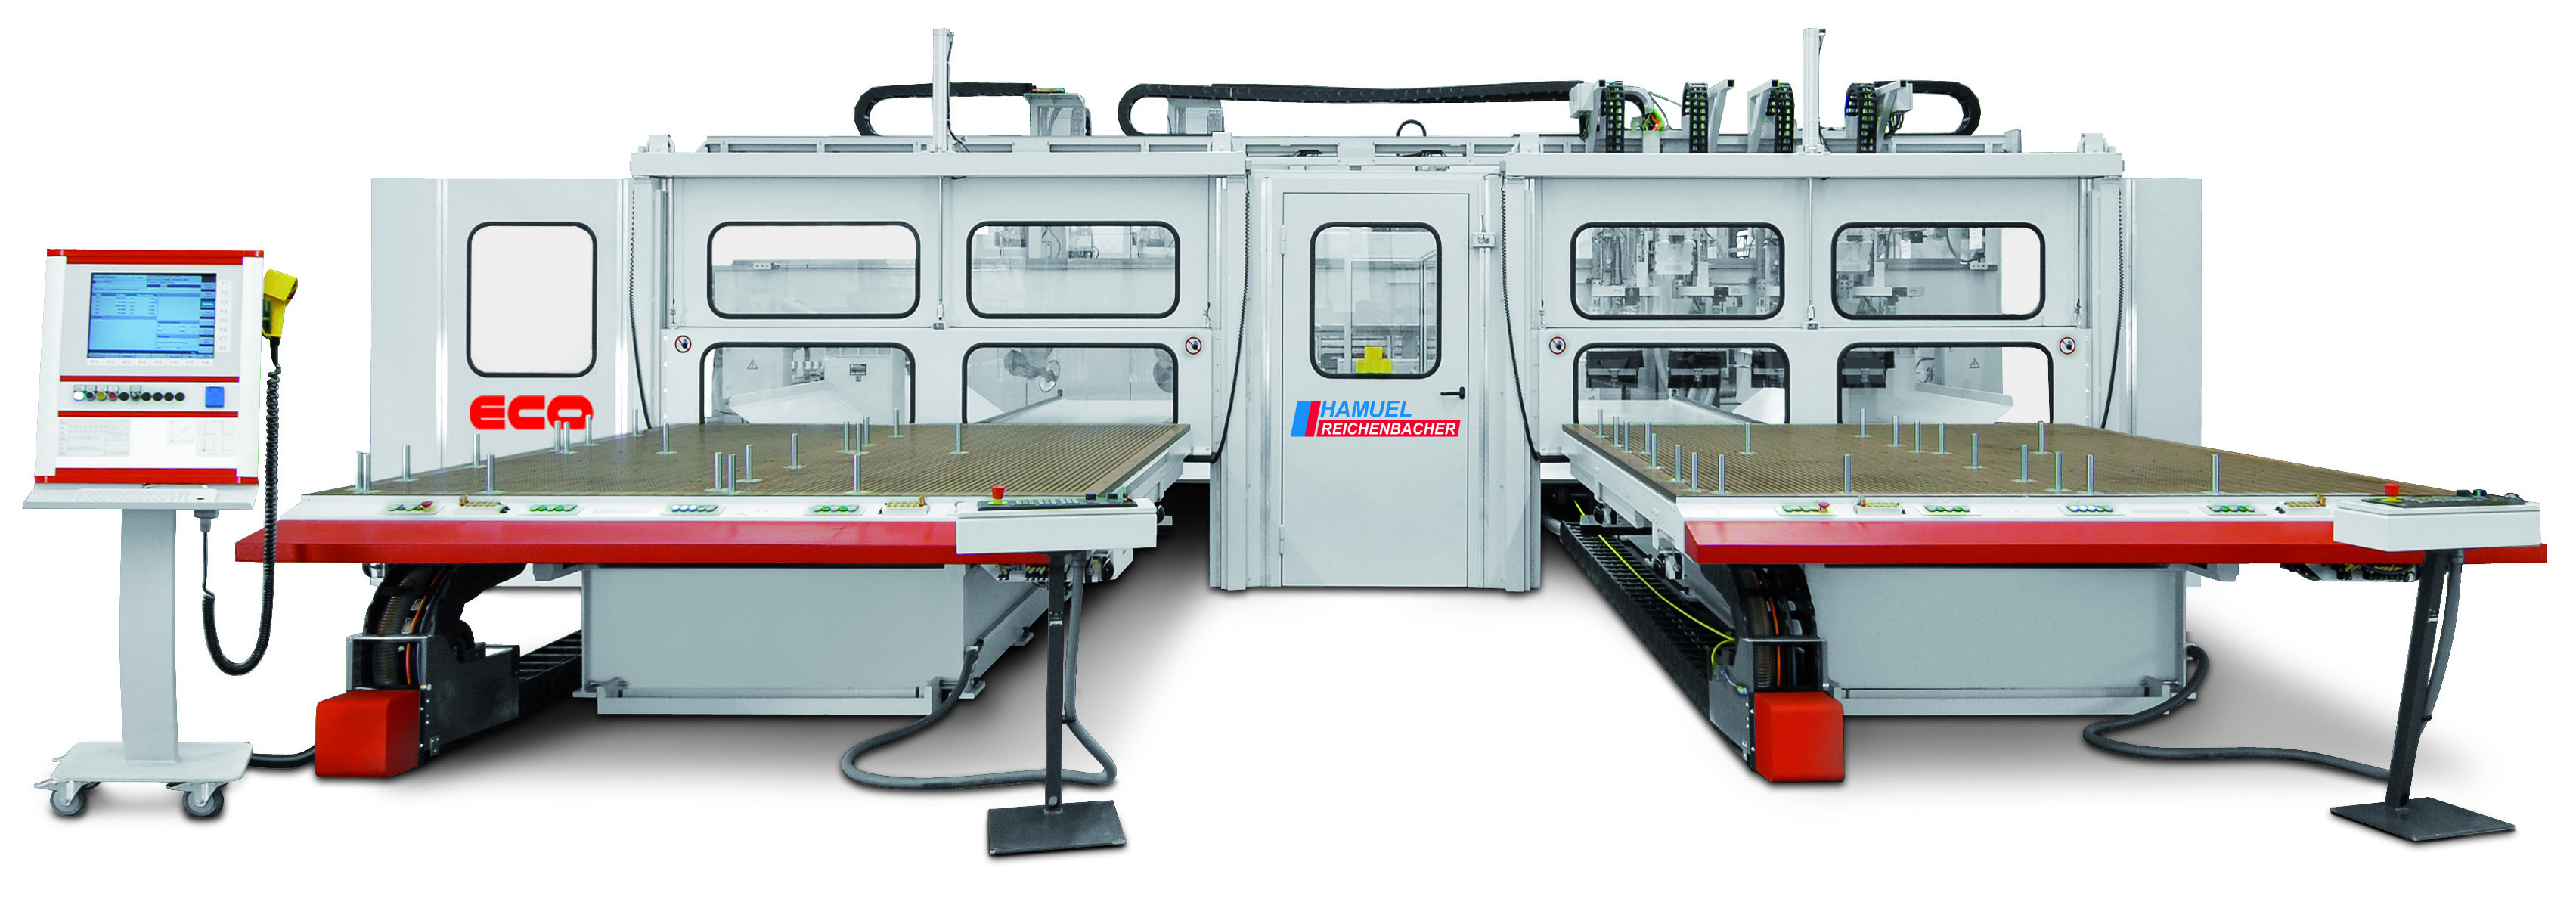 CNC machining centre ECO 2830-C with two mobile grid tables